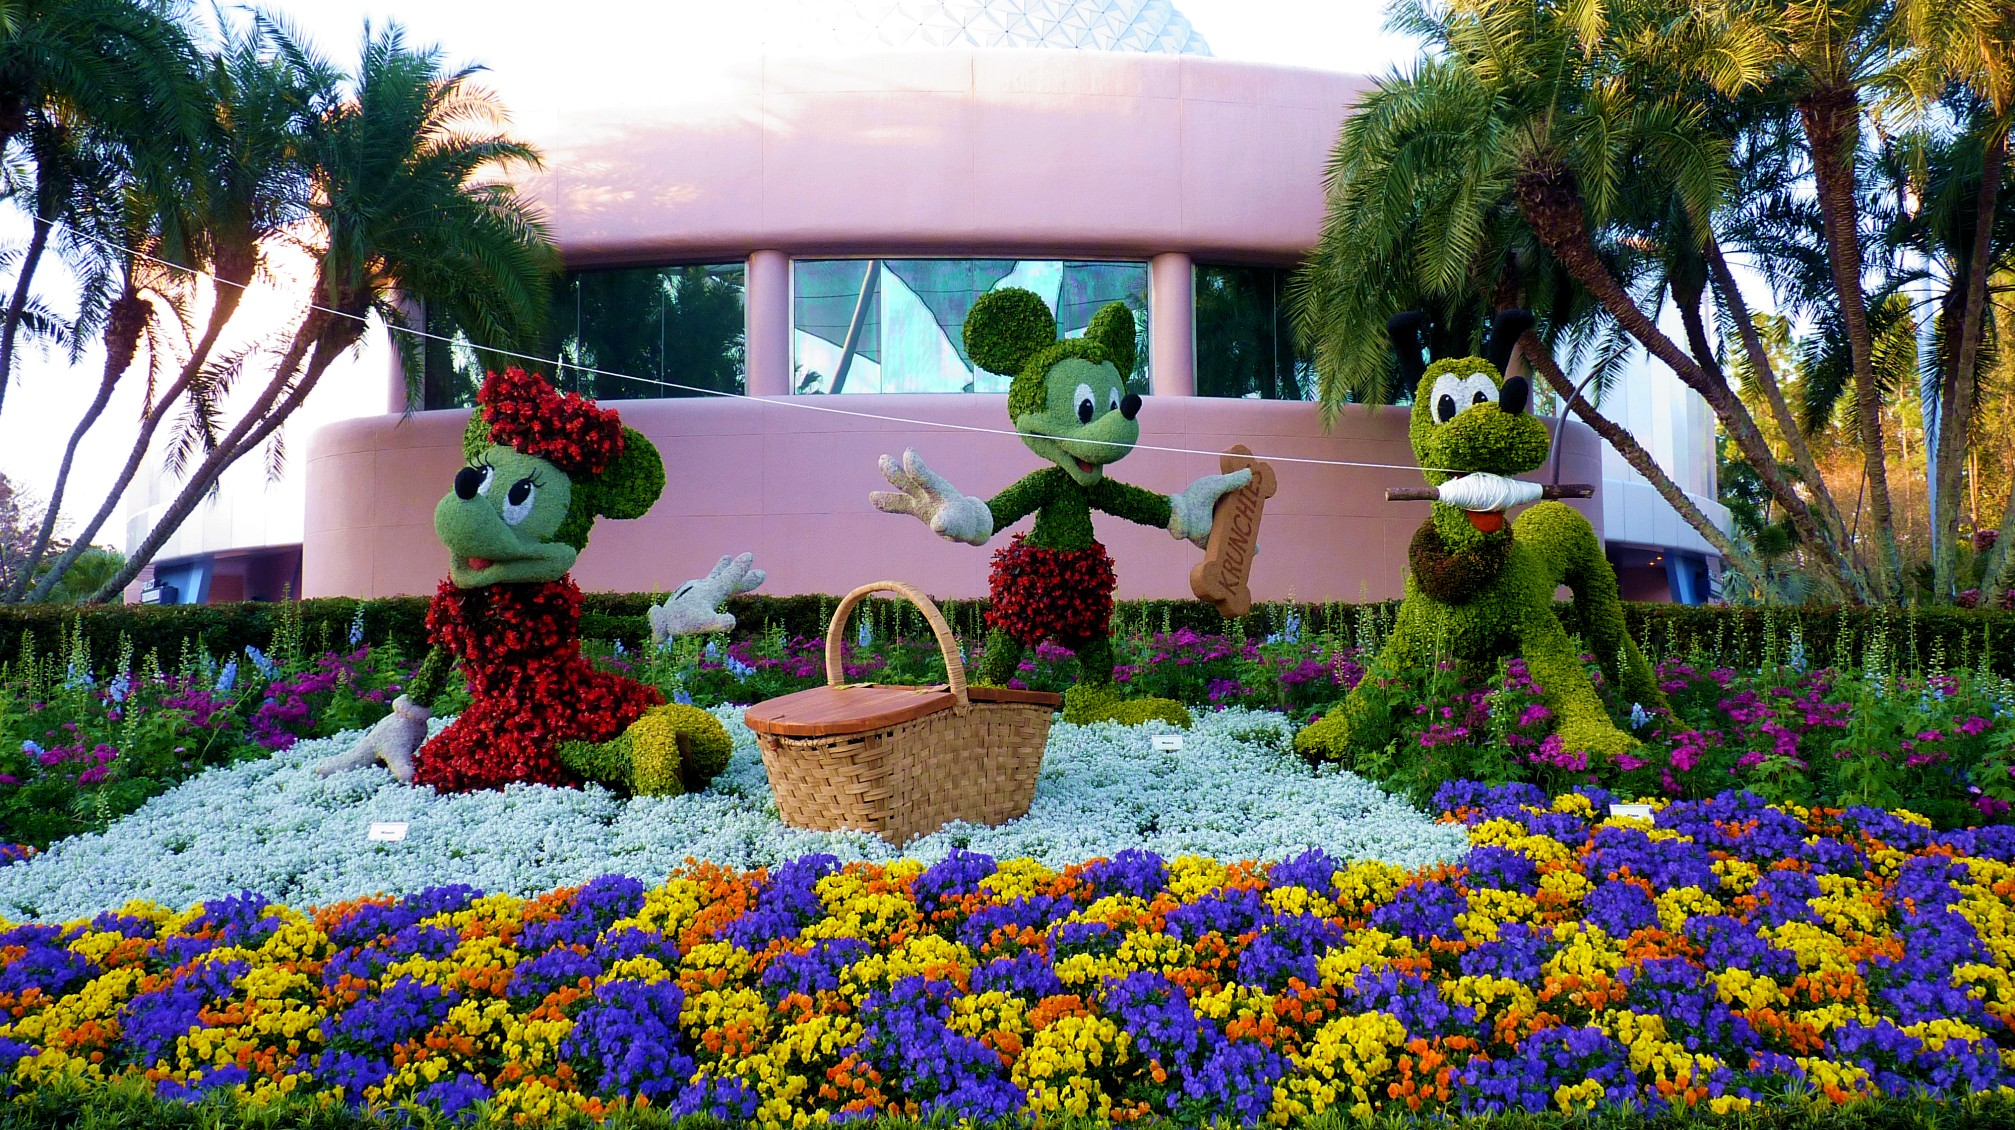 Jud's Disney Picture of the Day: MICKEY'S PICNIC